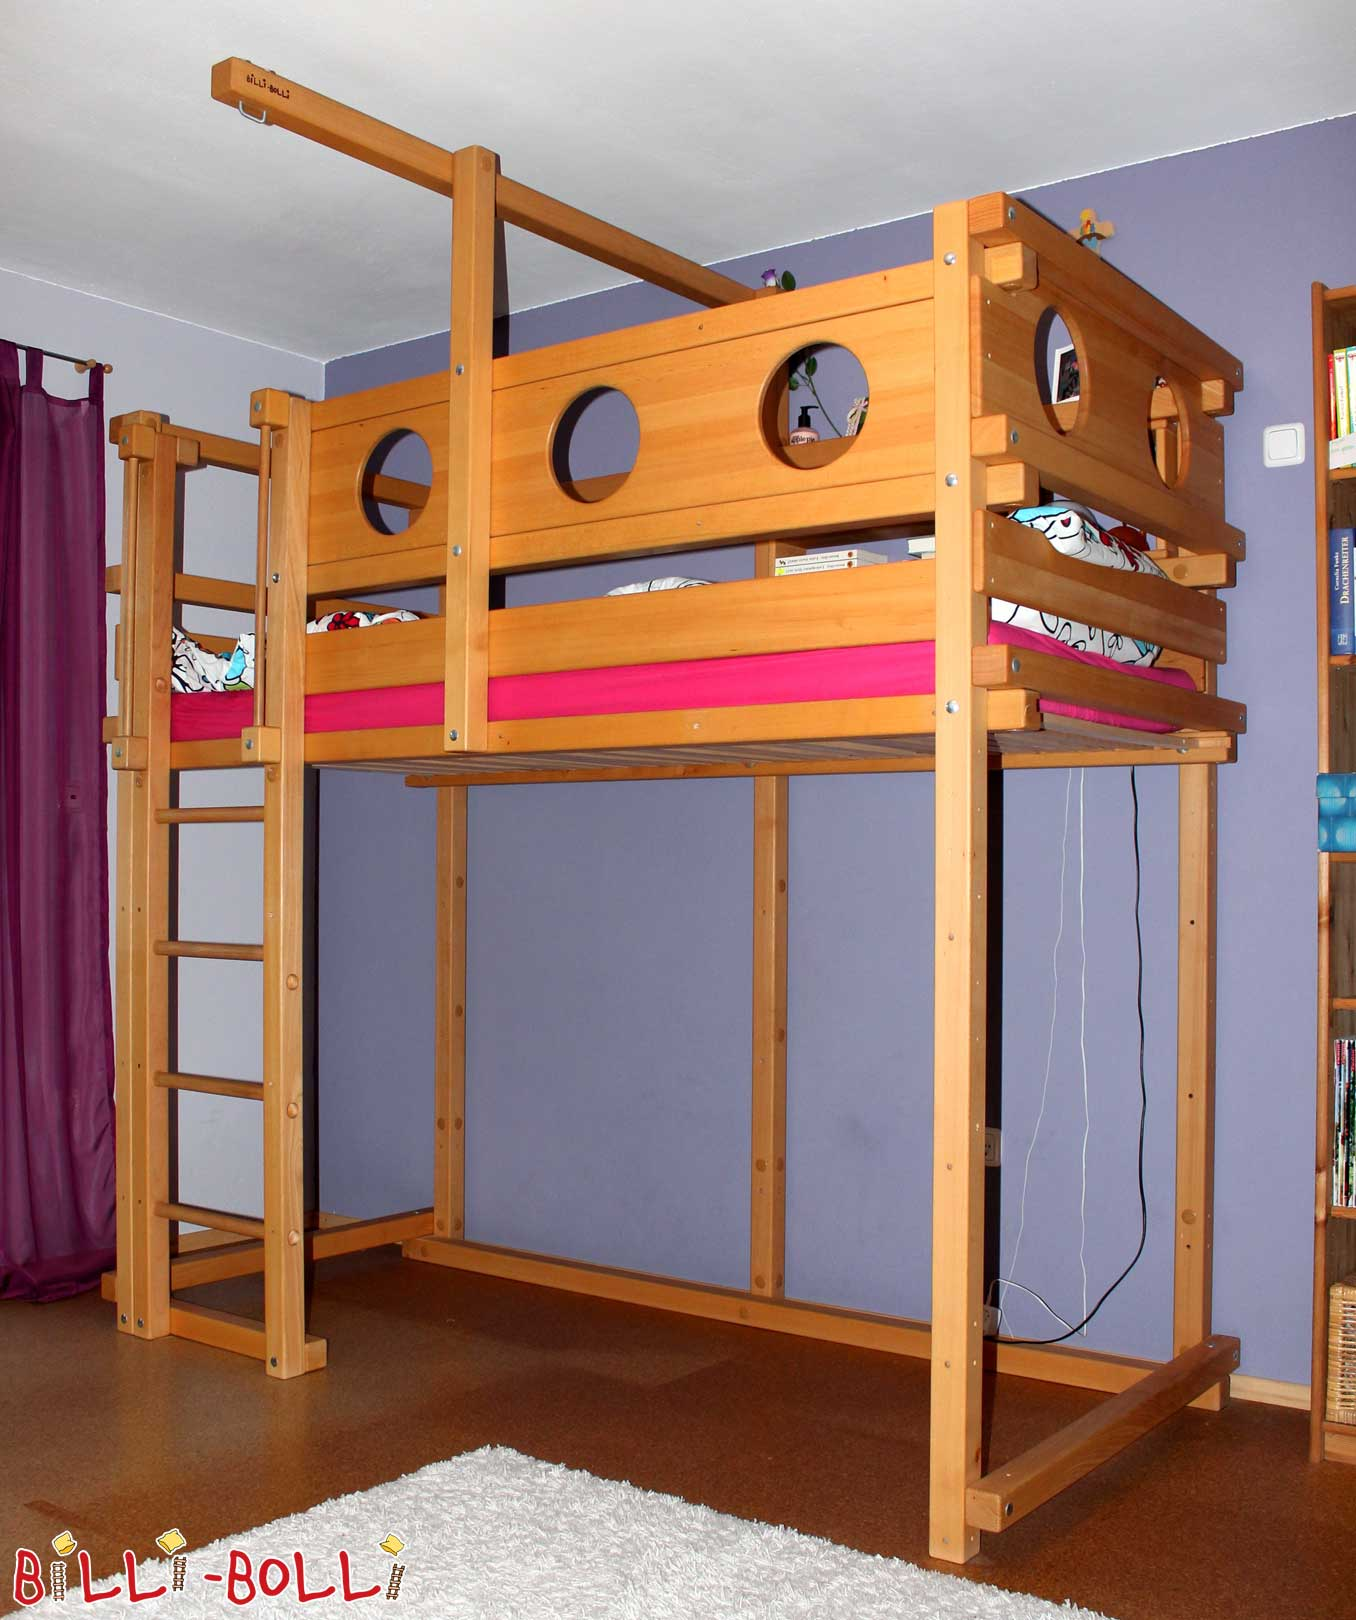 Loft bed growing with 90 x 200 cm, beech oil waxed (second hand loft bed)